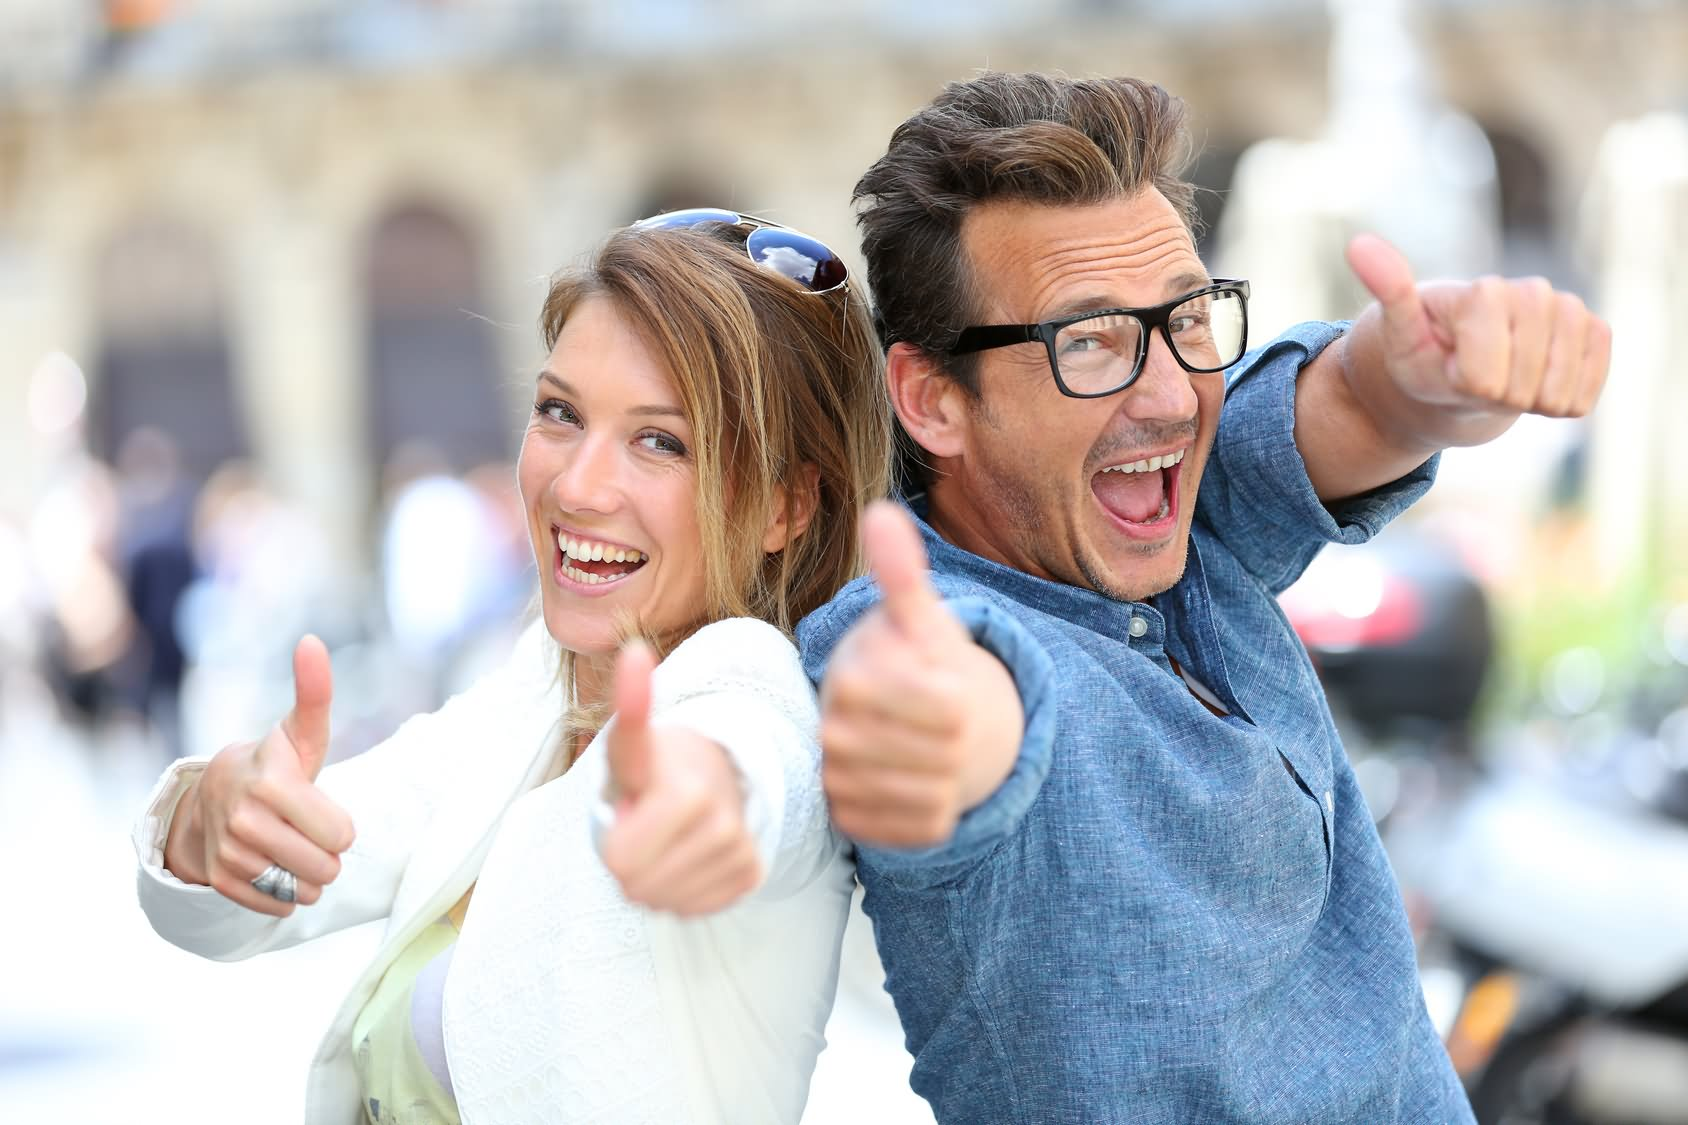 Couple thumbs images 2